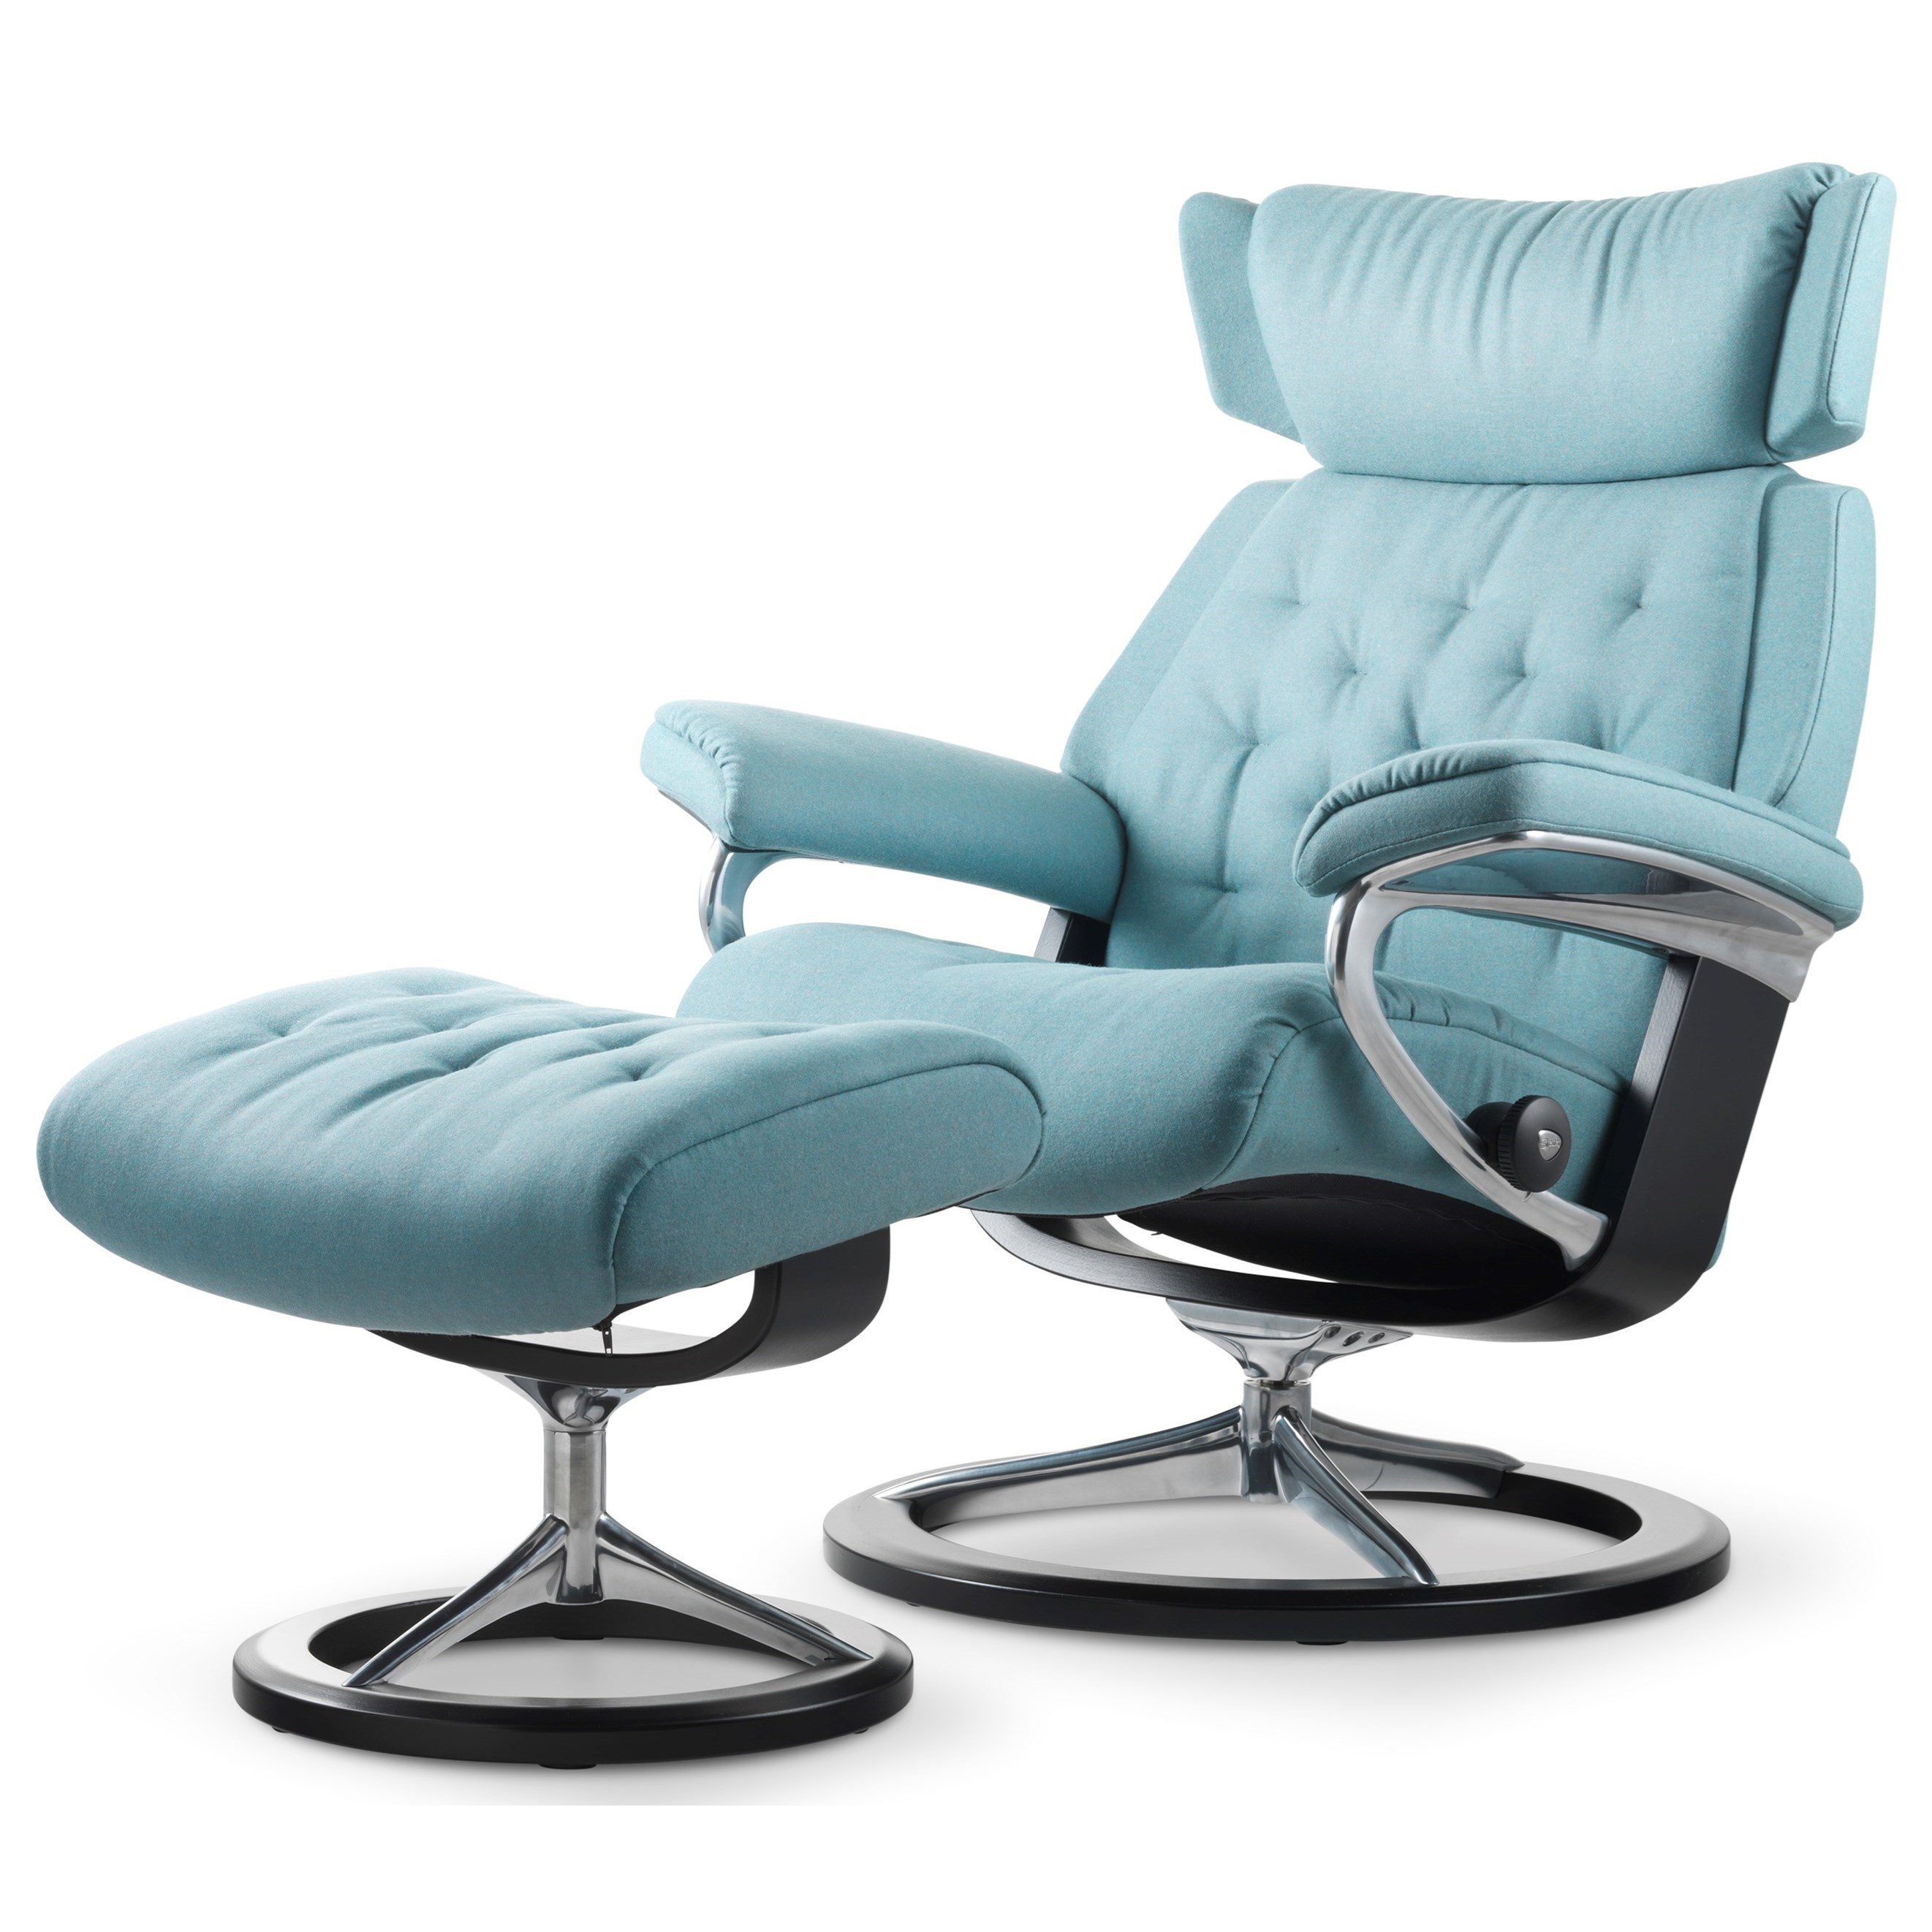 Stressless Skyline Medium Chair U0026 Ottoman With Signature Base   Item  Number: 1305310 Calido